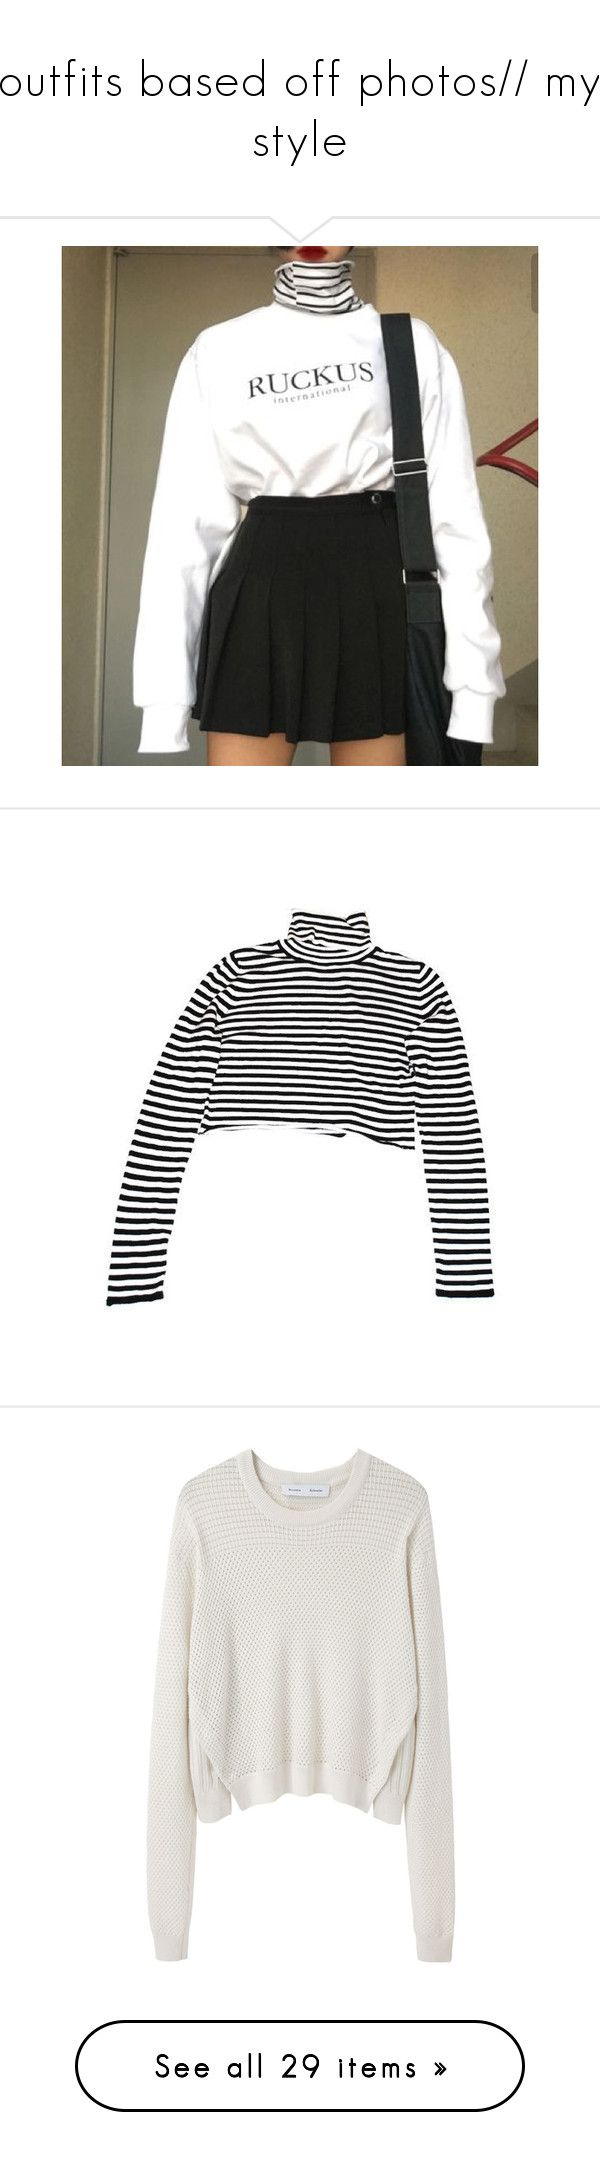 """""""outfits based off photos// my style"""" by dead-rhapsody ❤ liked on Polyvore featuring tops, shirts, crop top, sweaters, cropped tops, black and white striped shirt, turtleneck shirt, black and white shirt, shirt crop top and jumpers"""